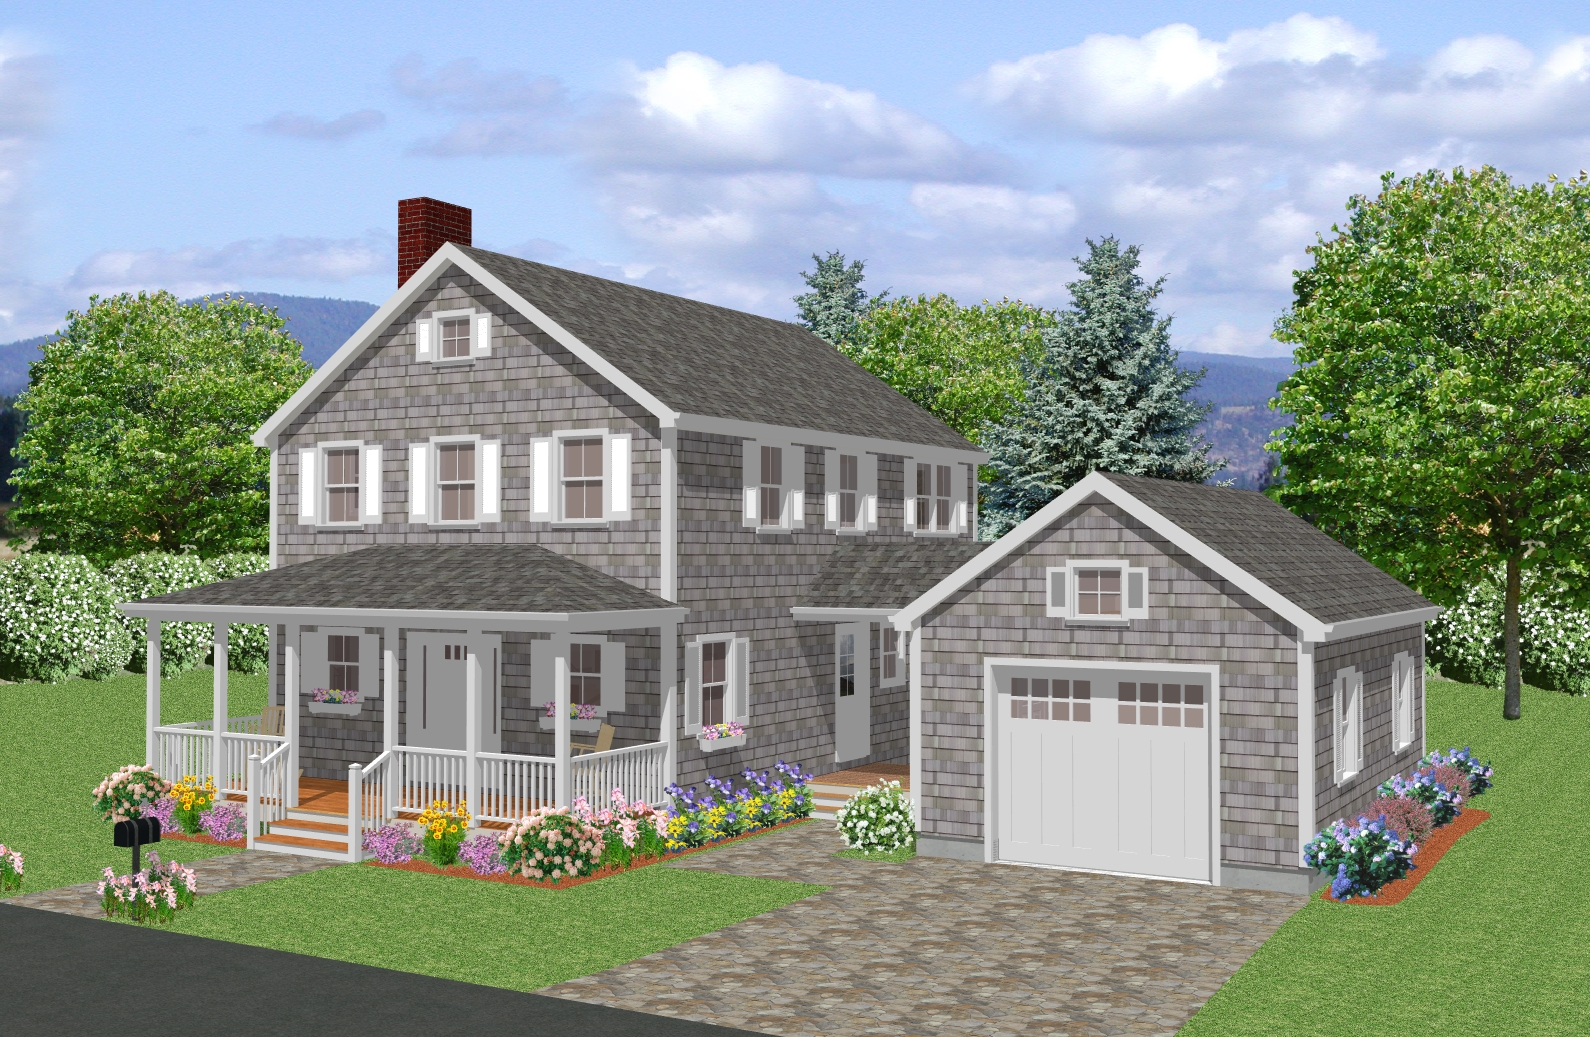 New england home plans omahdesigns net for New england home plans